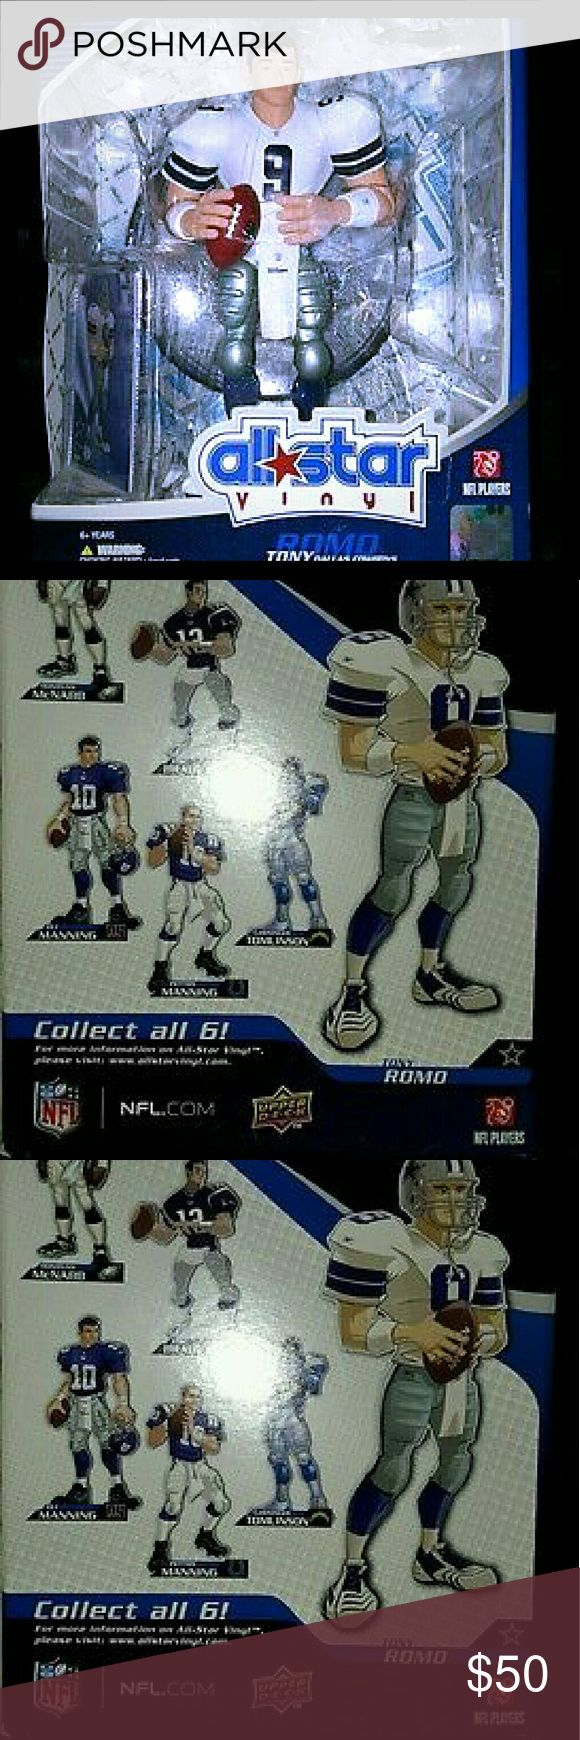 "Tony Romo Upper Deck All Star Vinyl 9"" Figure Upper Deck Tony Romo All Star Vinyl collectible figure from 2008. NFL Series 1, new in box, has never been removed from it's packaging. Figure is approximately 9 inches tall and comes with football, helmet, stand, and trading card. Smoke free home, fast shipping. Other"